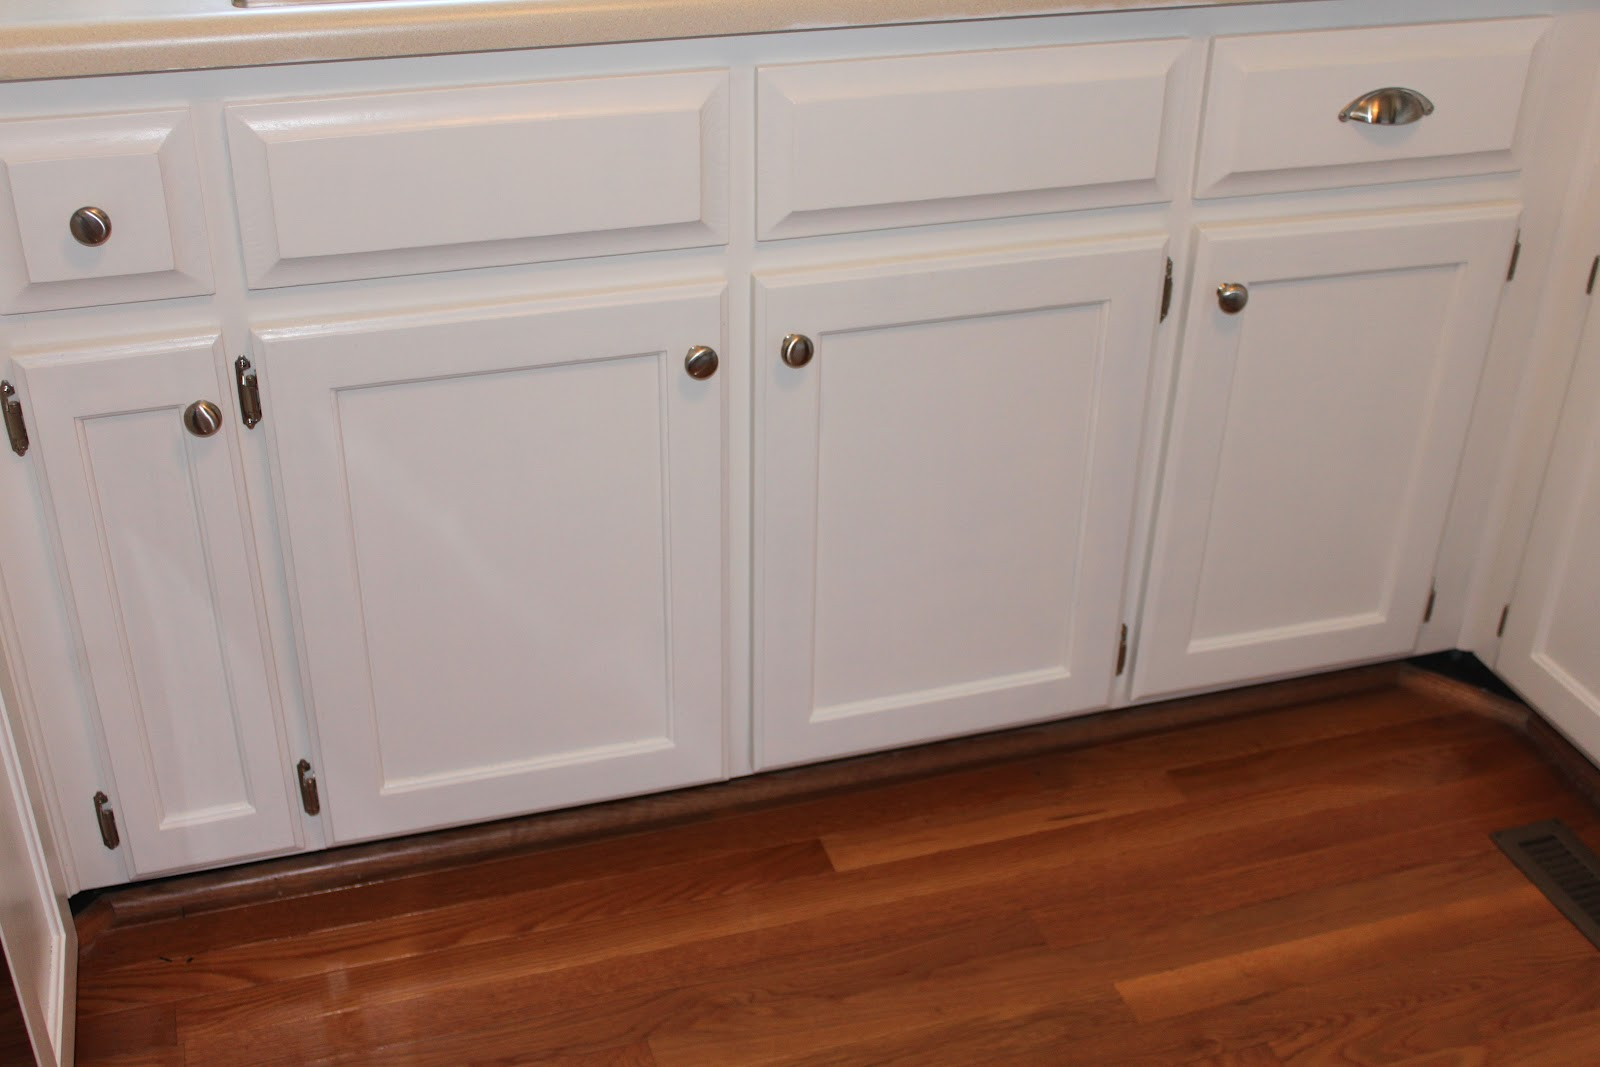 I think the white cabinets look much better with our wood floors.